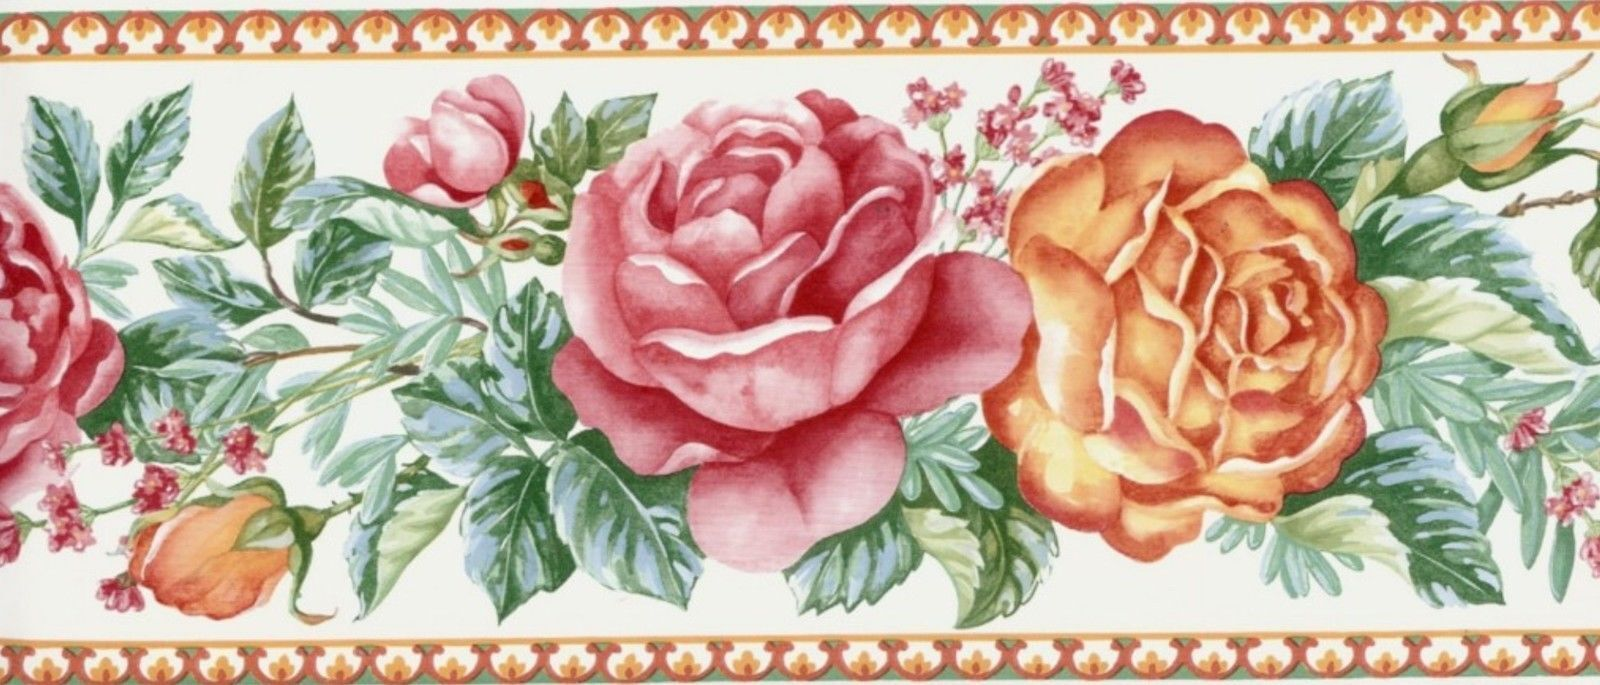 Wallpaper Border Country Floral Red Orange Green For Sale Online